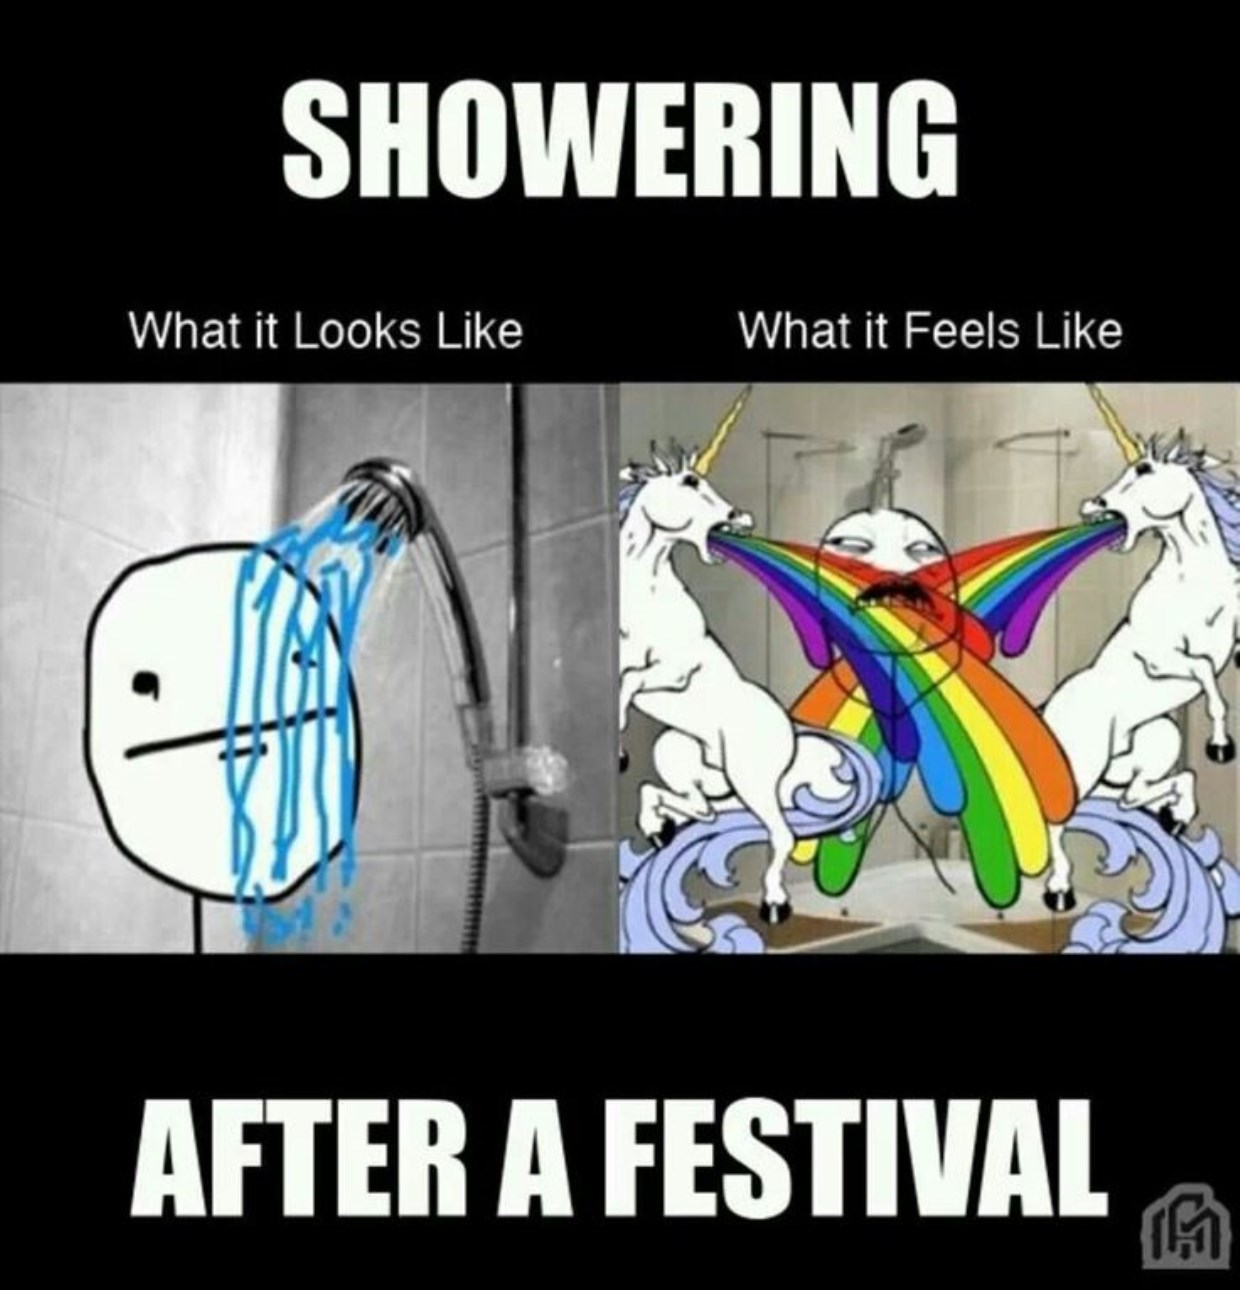 After festival